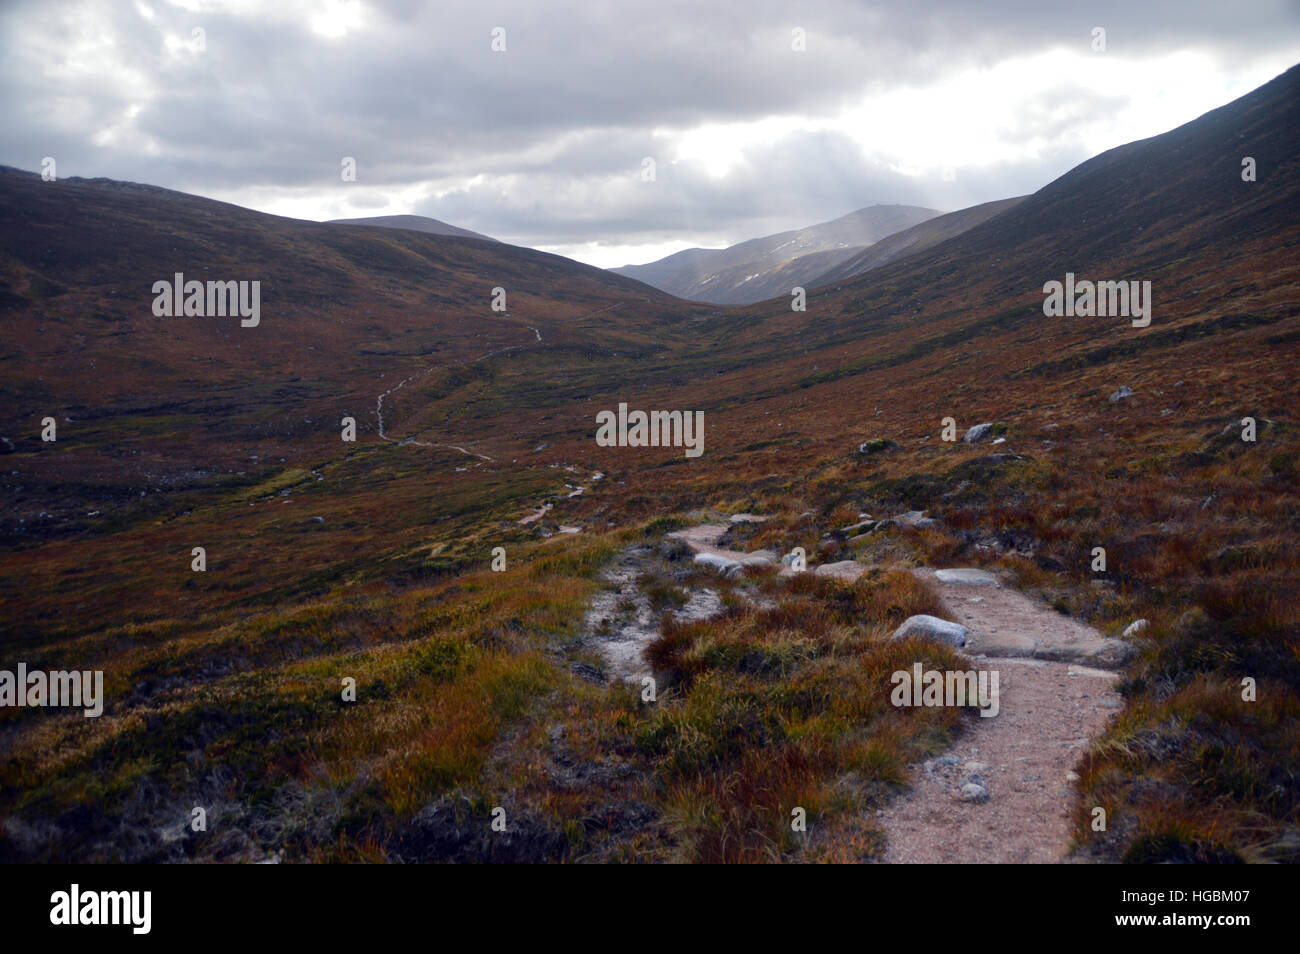 The Corbett Creag Mhor and the Footpath to Braemar via the Lairig an Laoigh from Glenmore Lodge. Scottish Highlands. Stock Photo